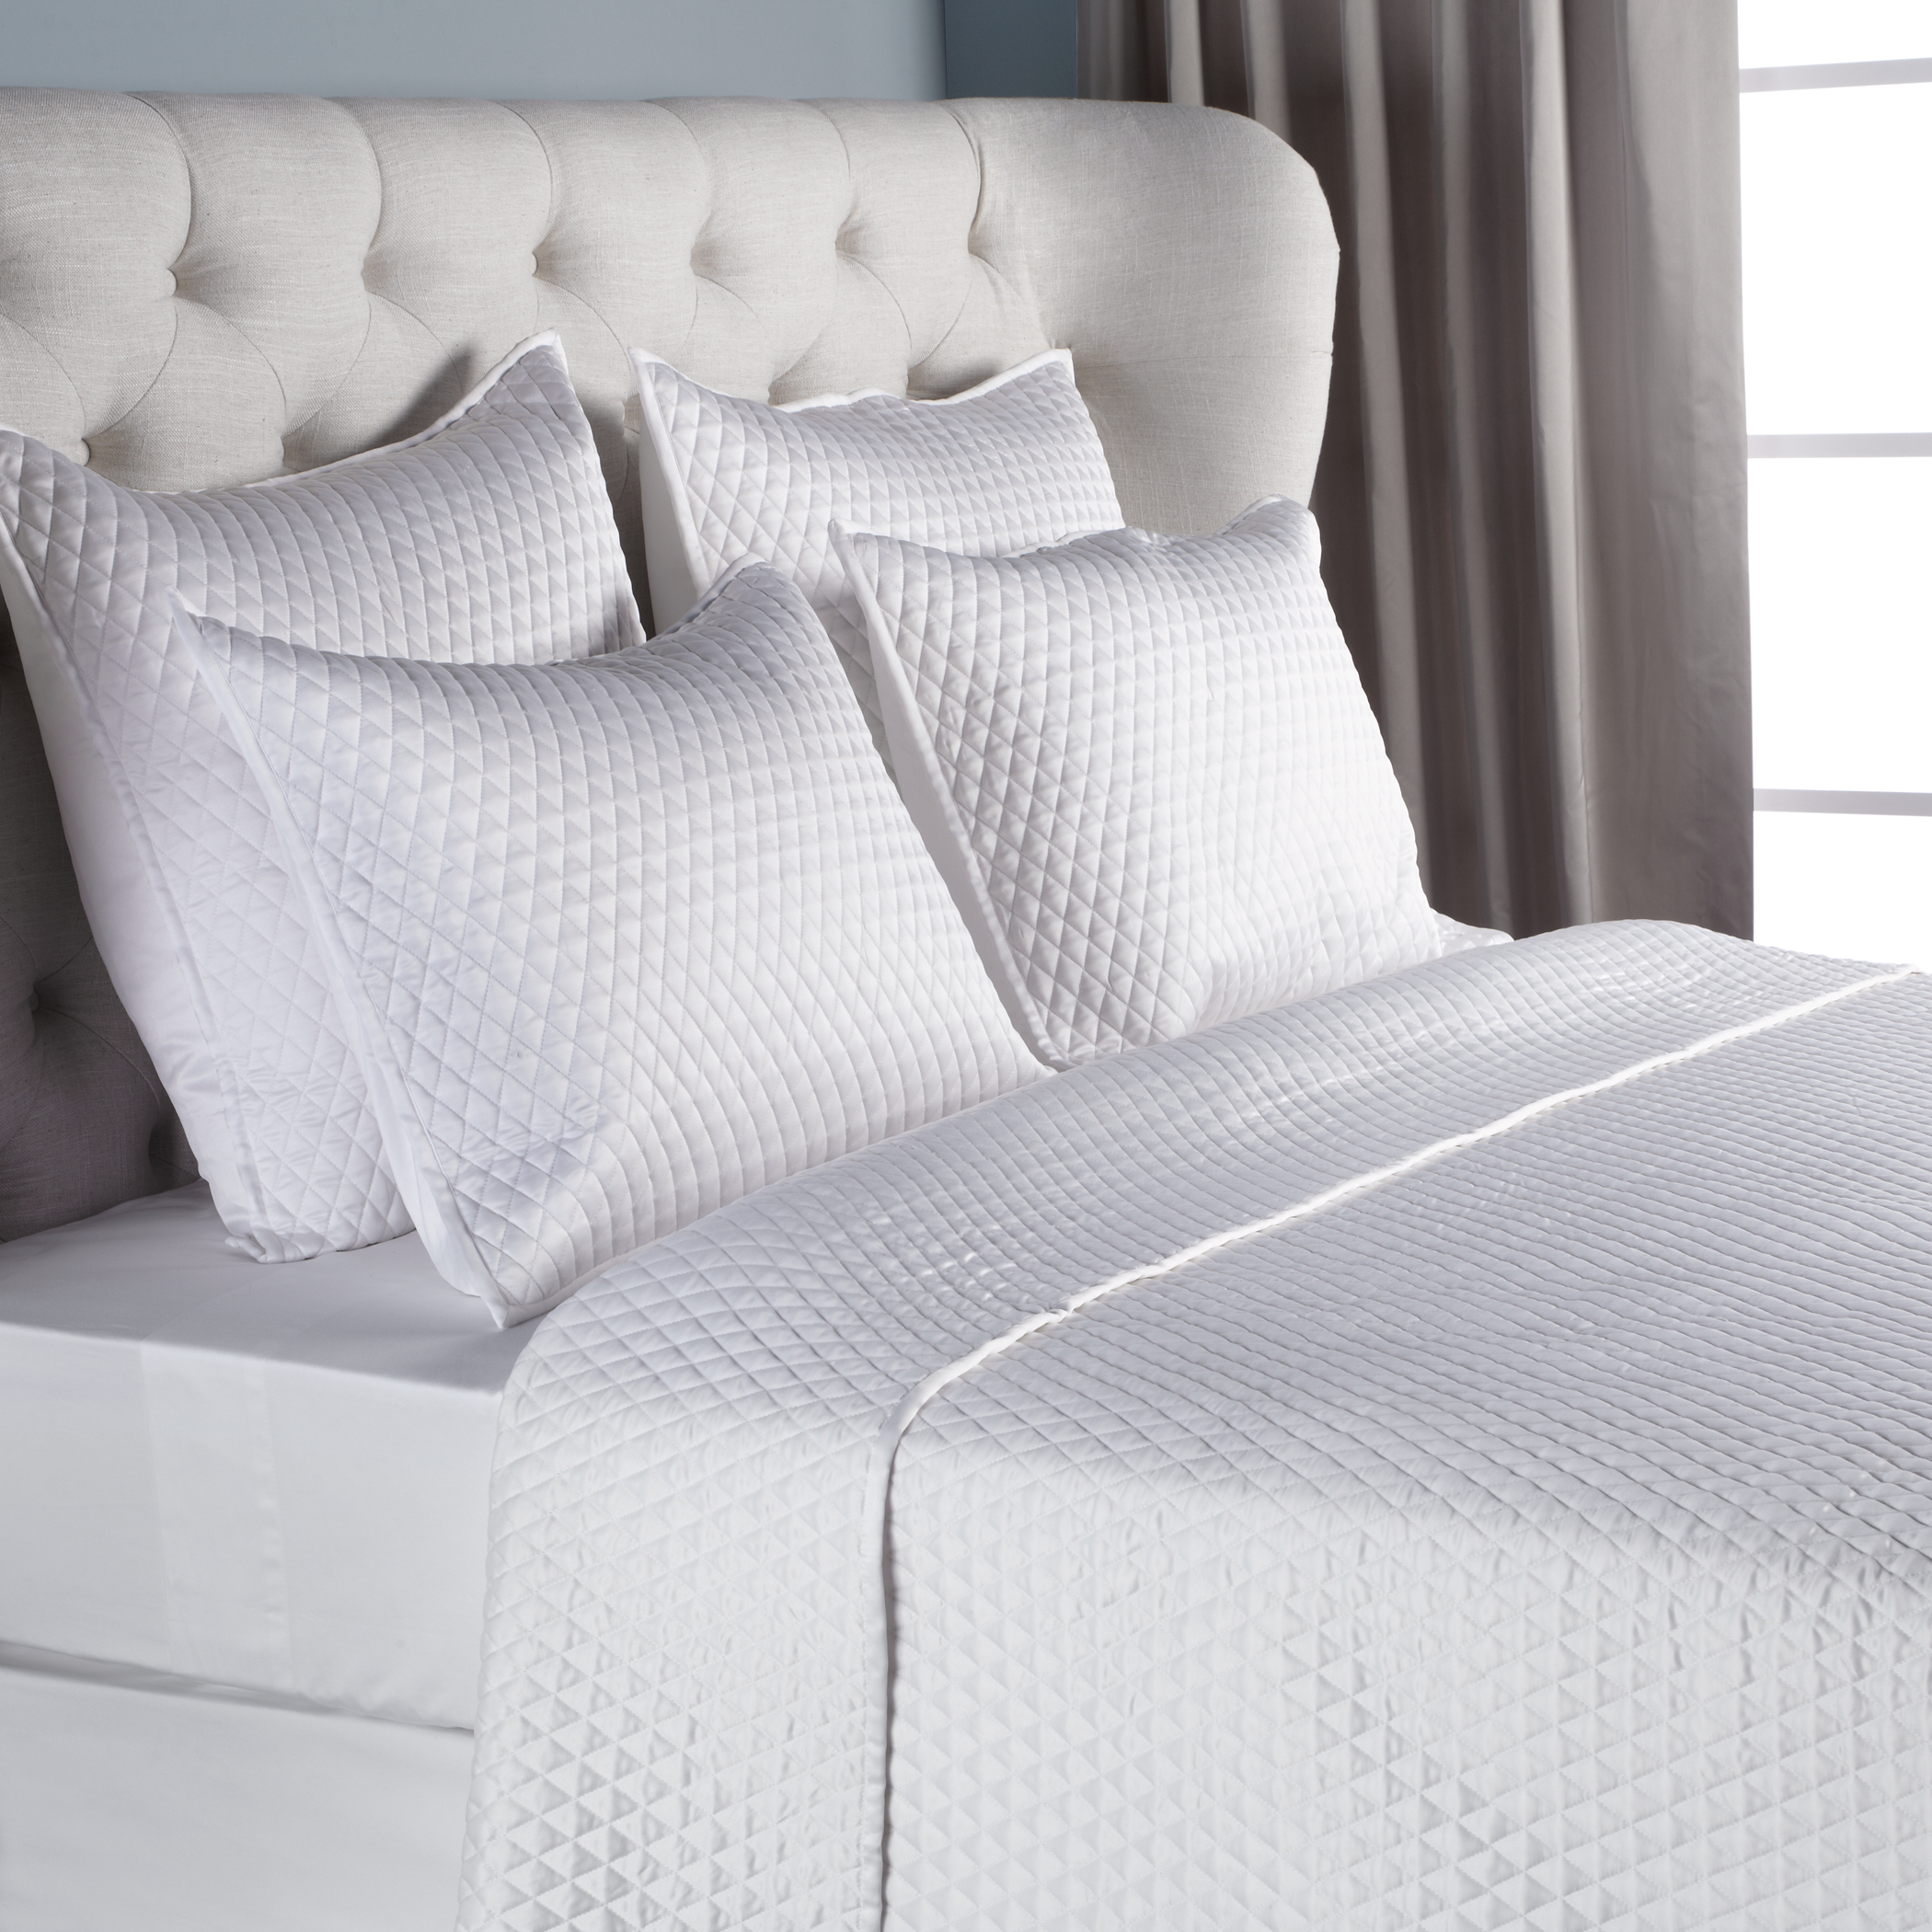 dual king quilt